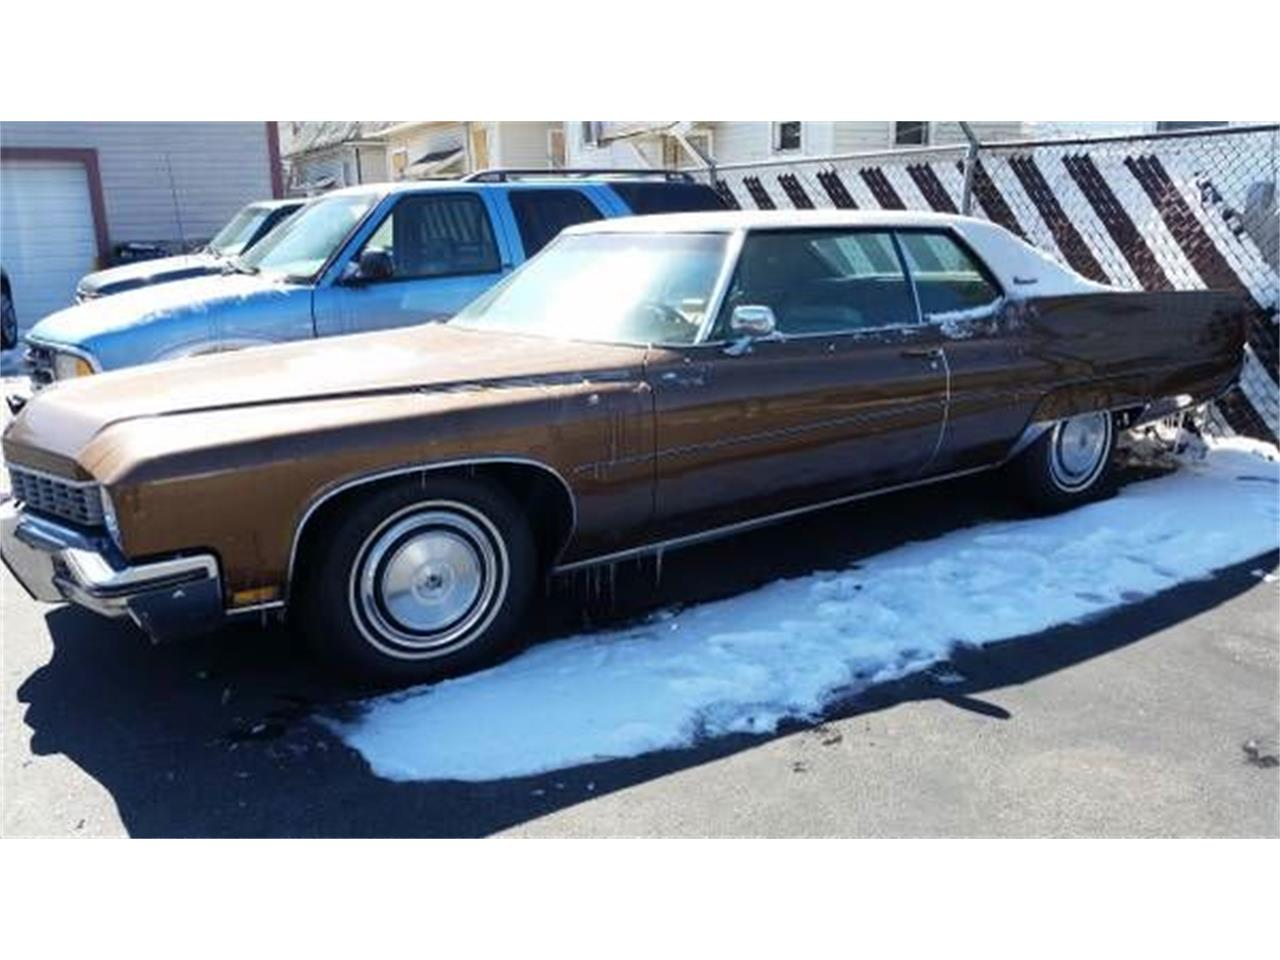 Large Picture of Classic '72 Buick Electra 225 located in Cadillac Michigan - $8,995.00 Offered by Classic Car Deals - NZIT